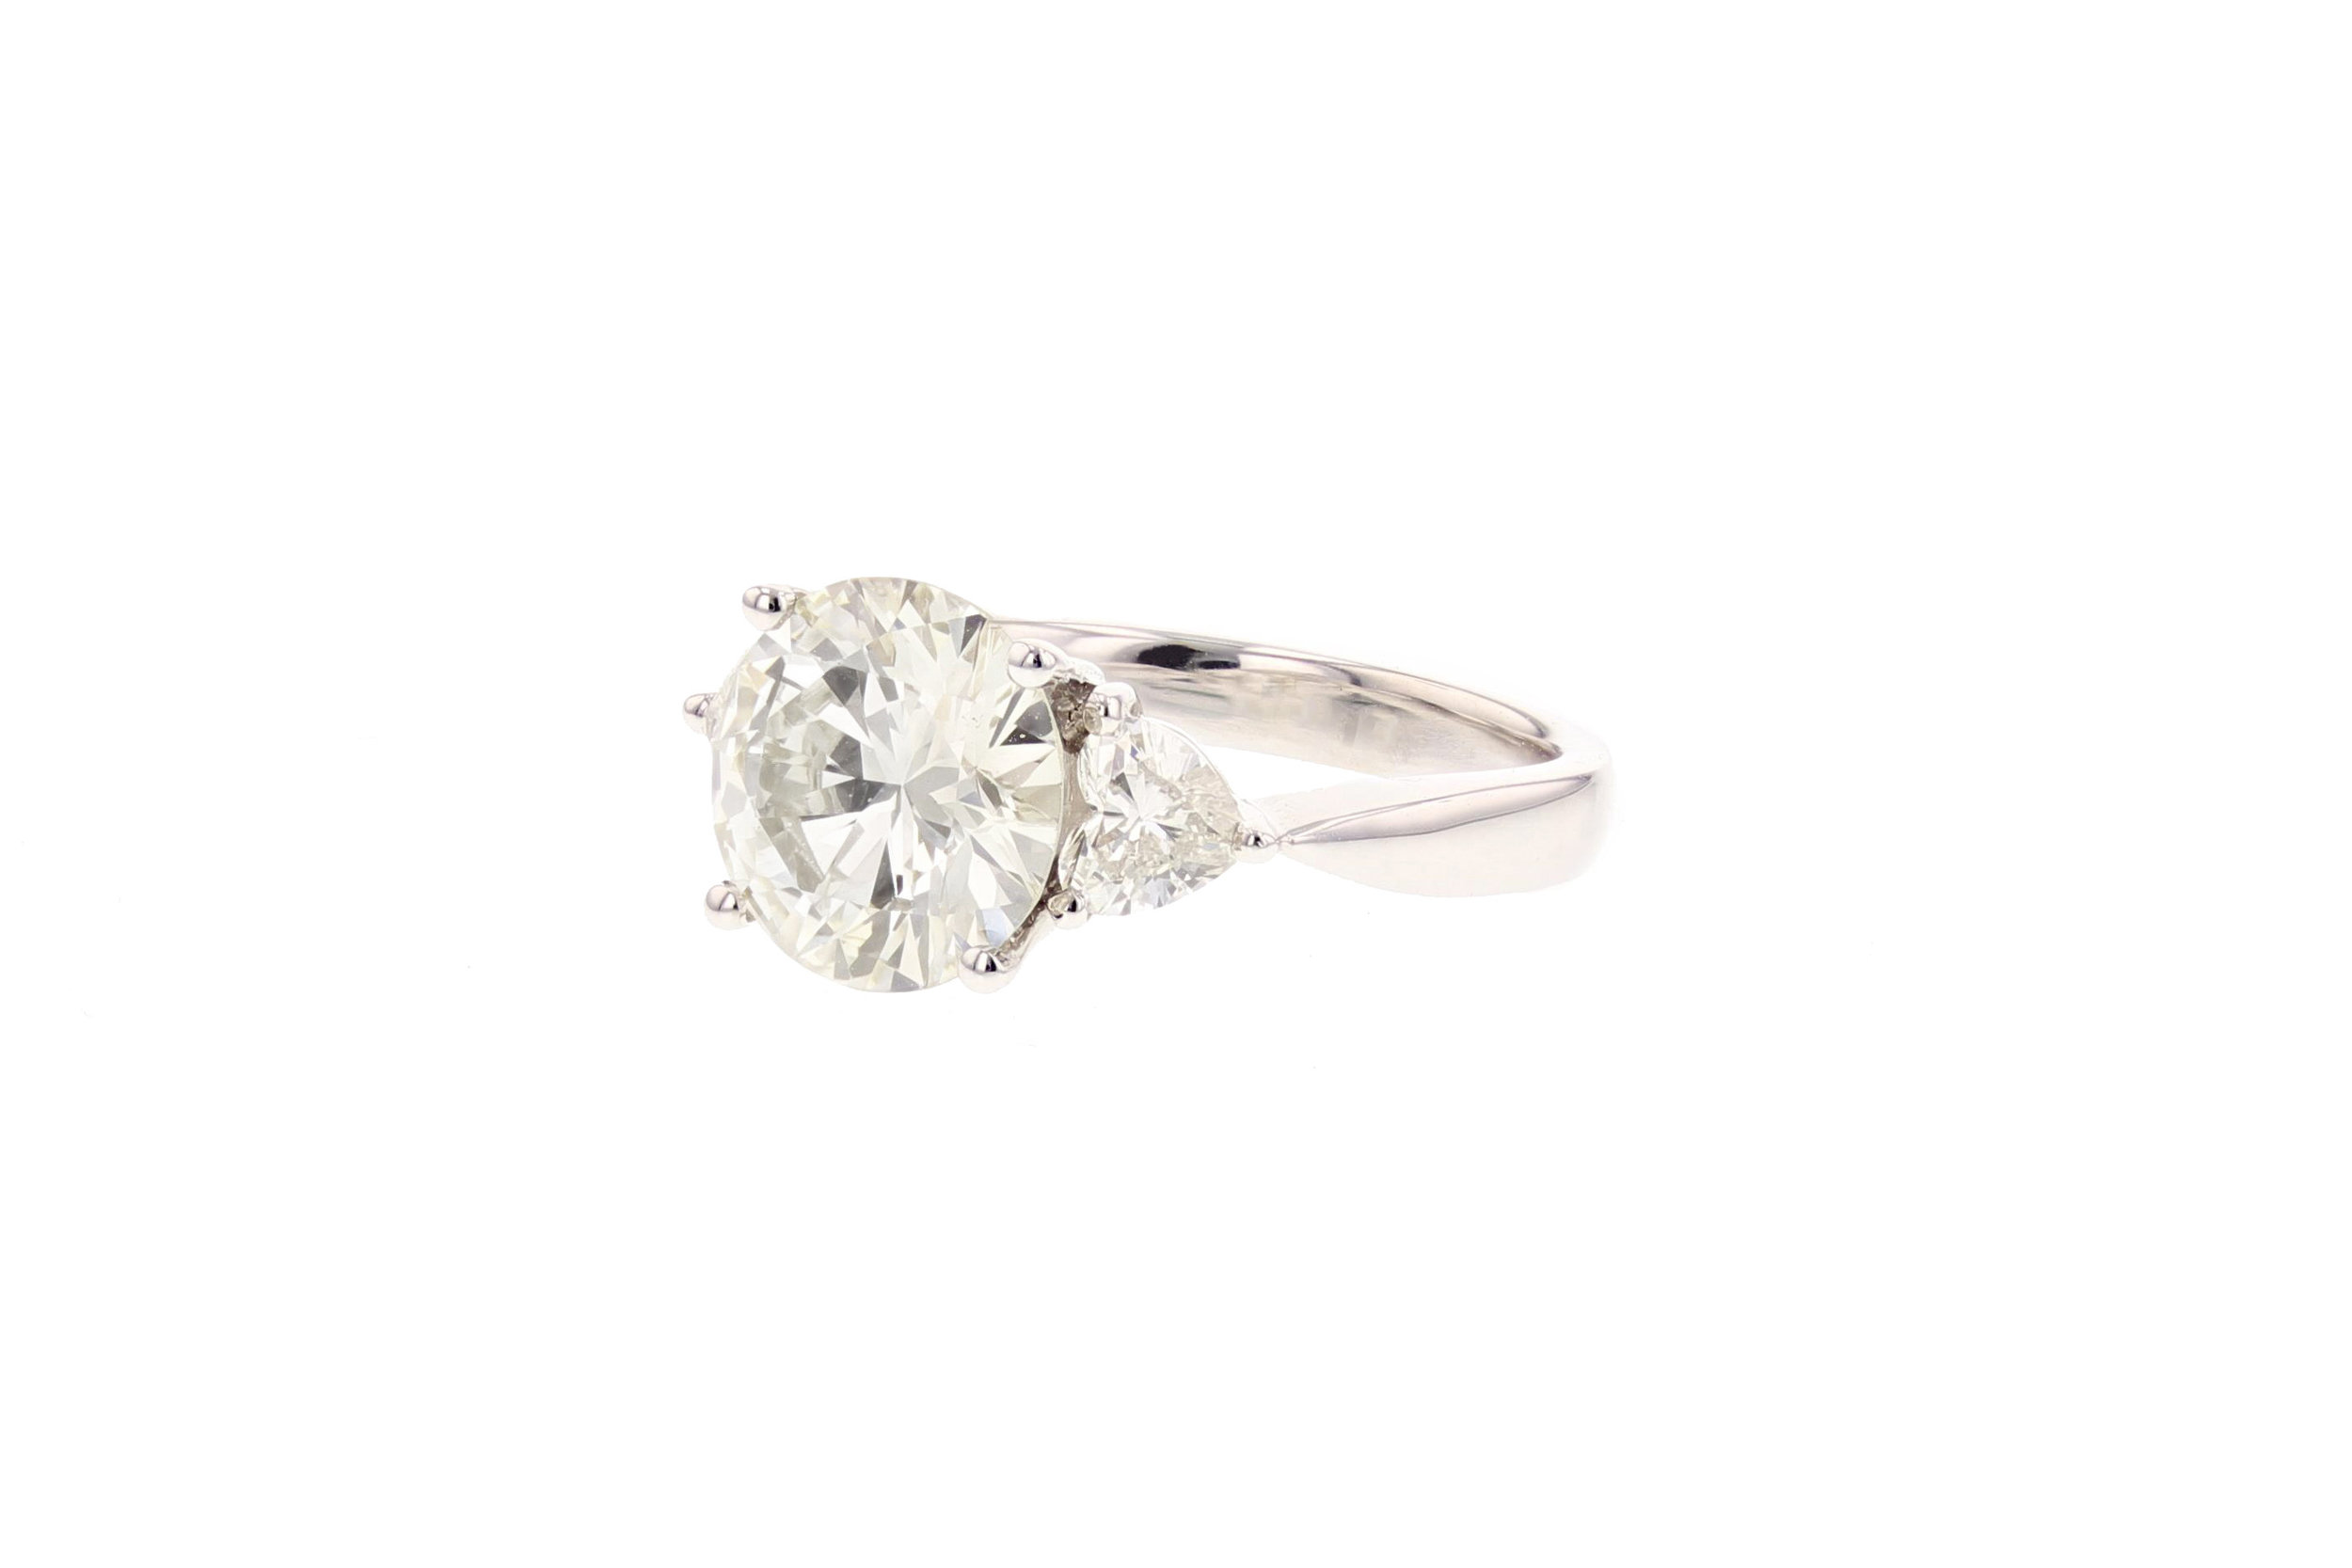 3.65 ctw. Diamond ring. $28,465